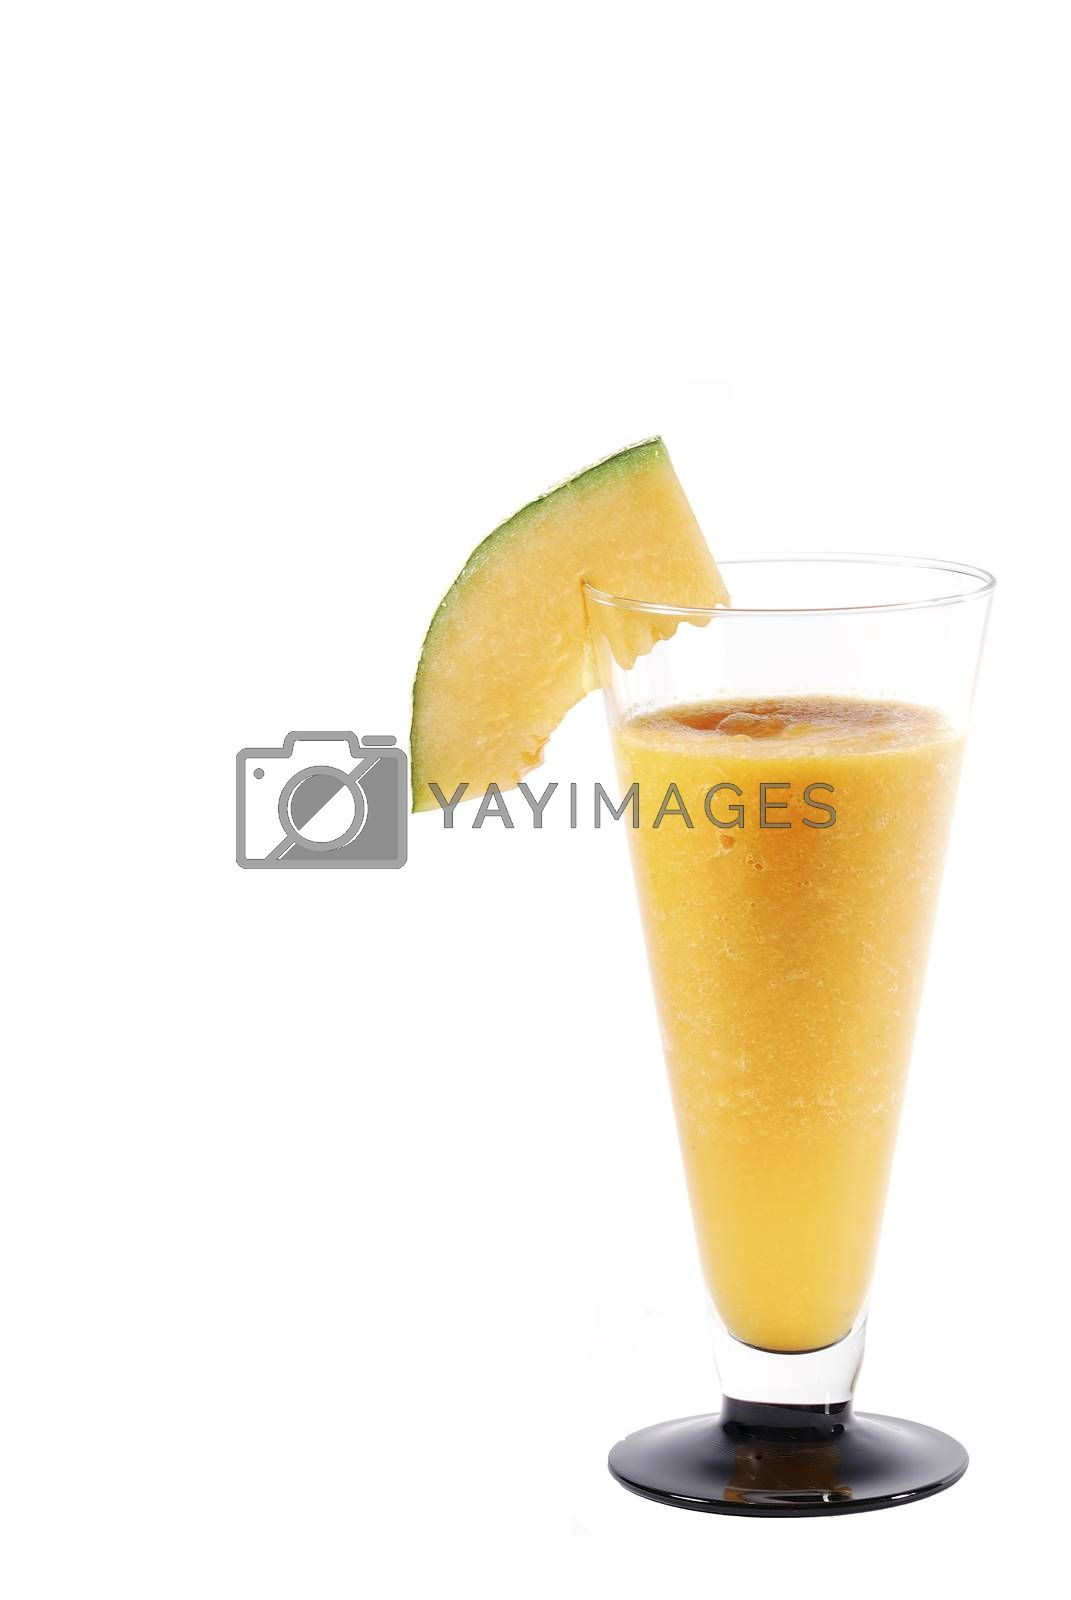 yellow juicy melons healthy ginger smoothie big closeup on white background portrait right